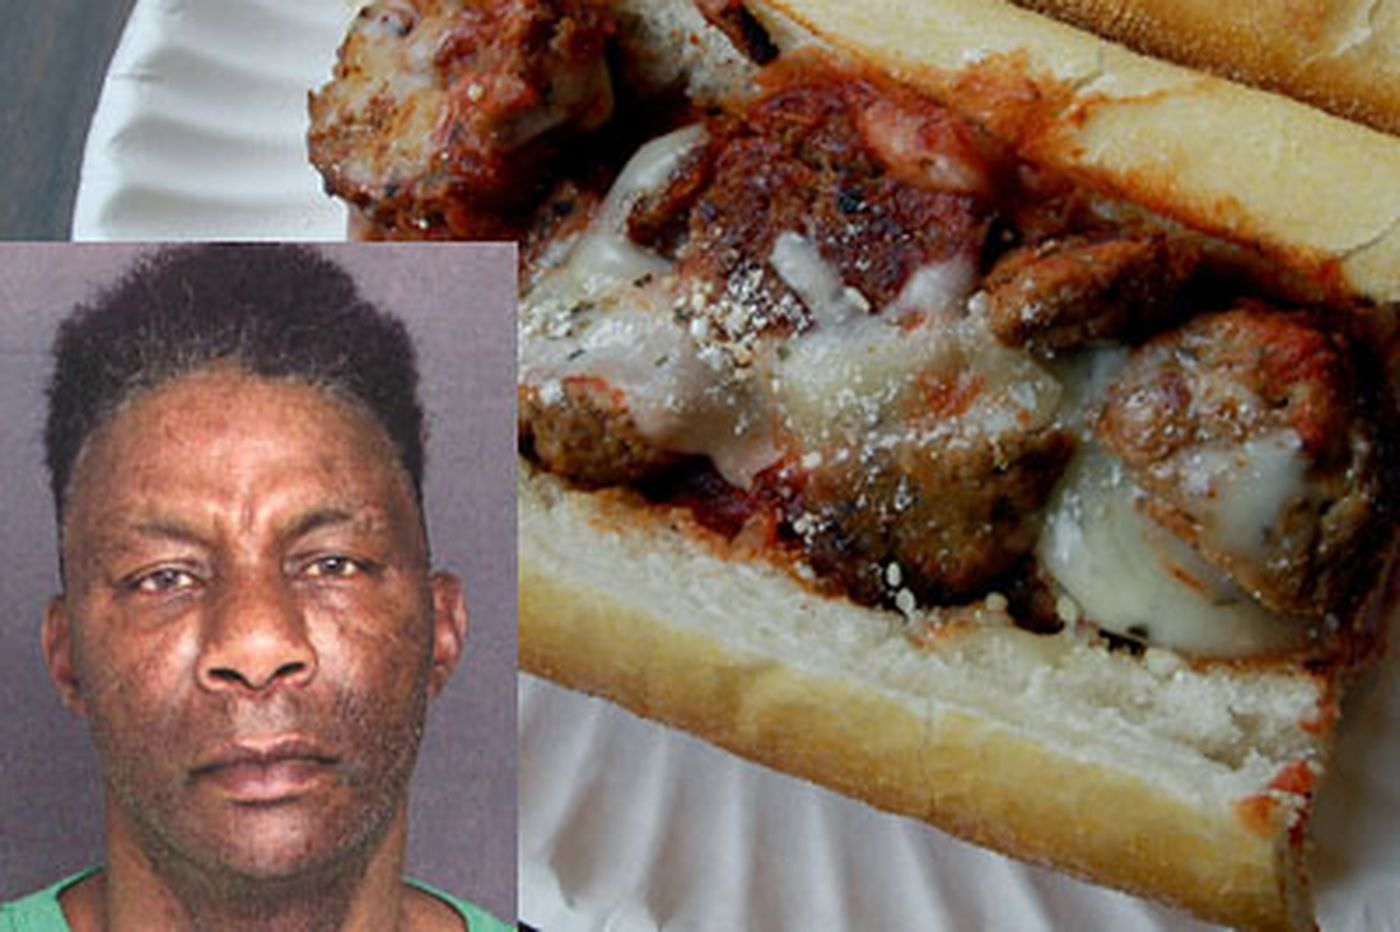 Cops: Man who didn't like sandwich attacks fiance